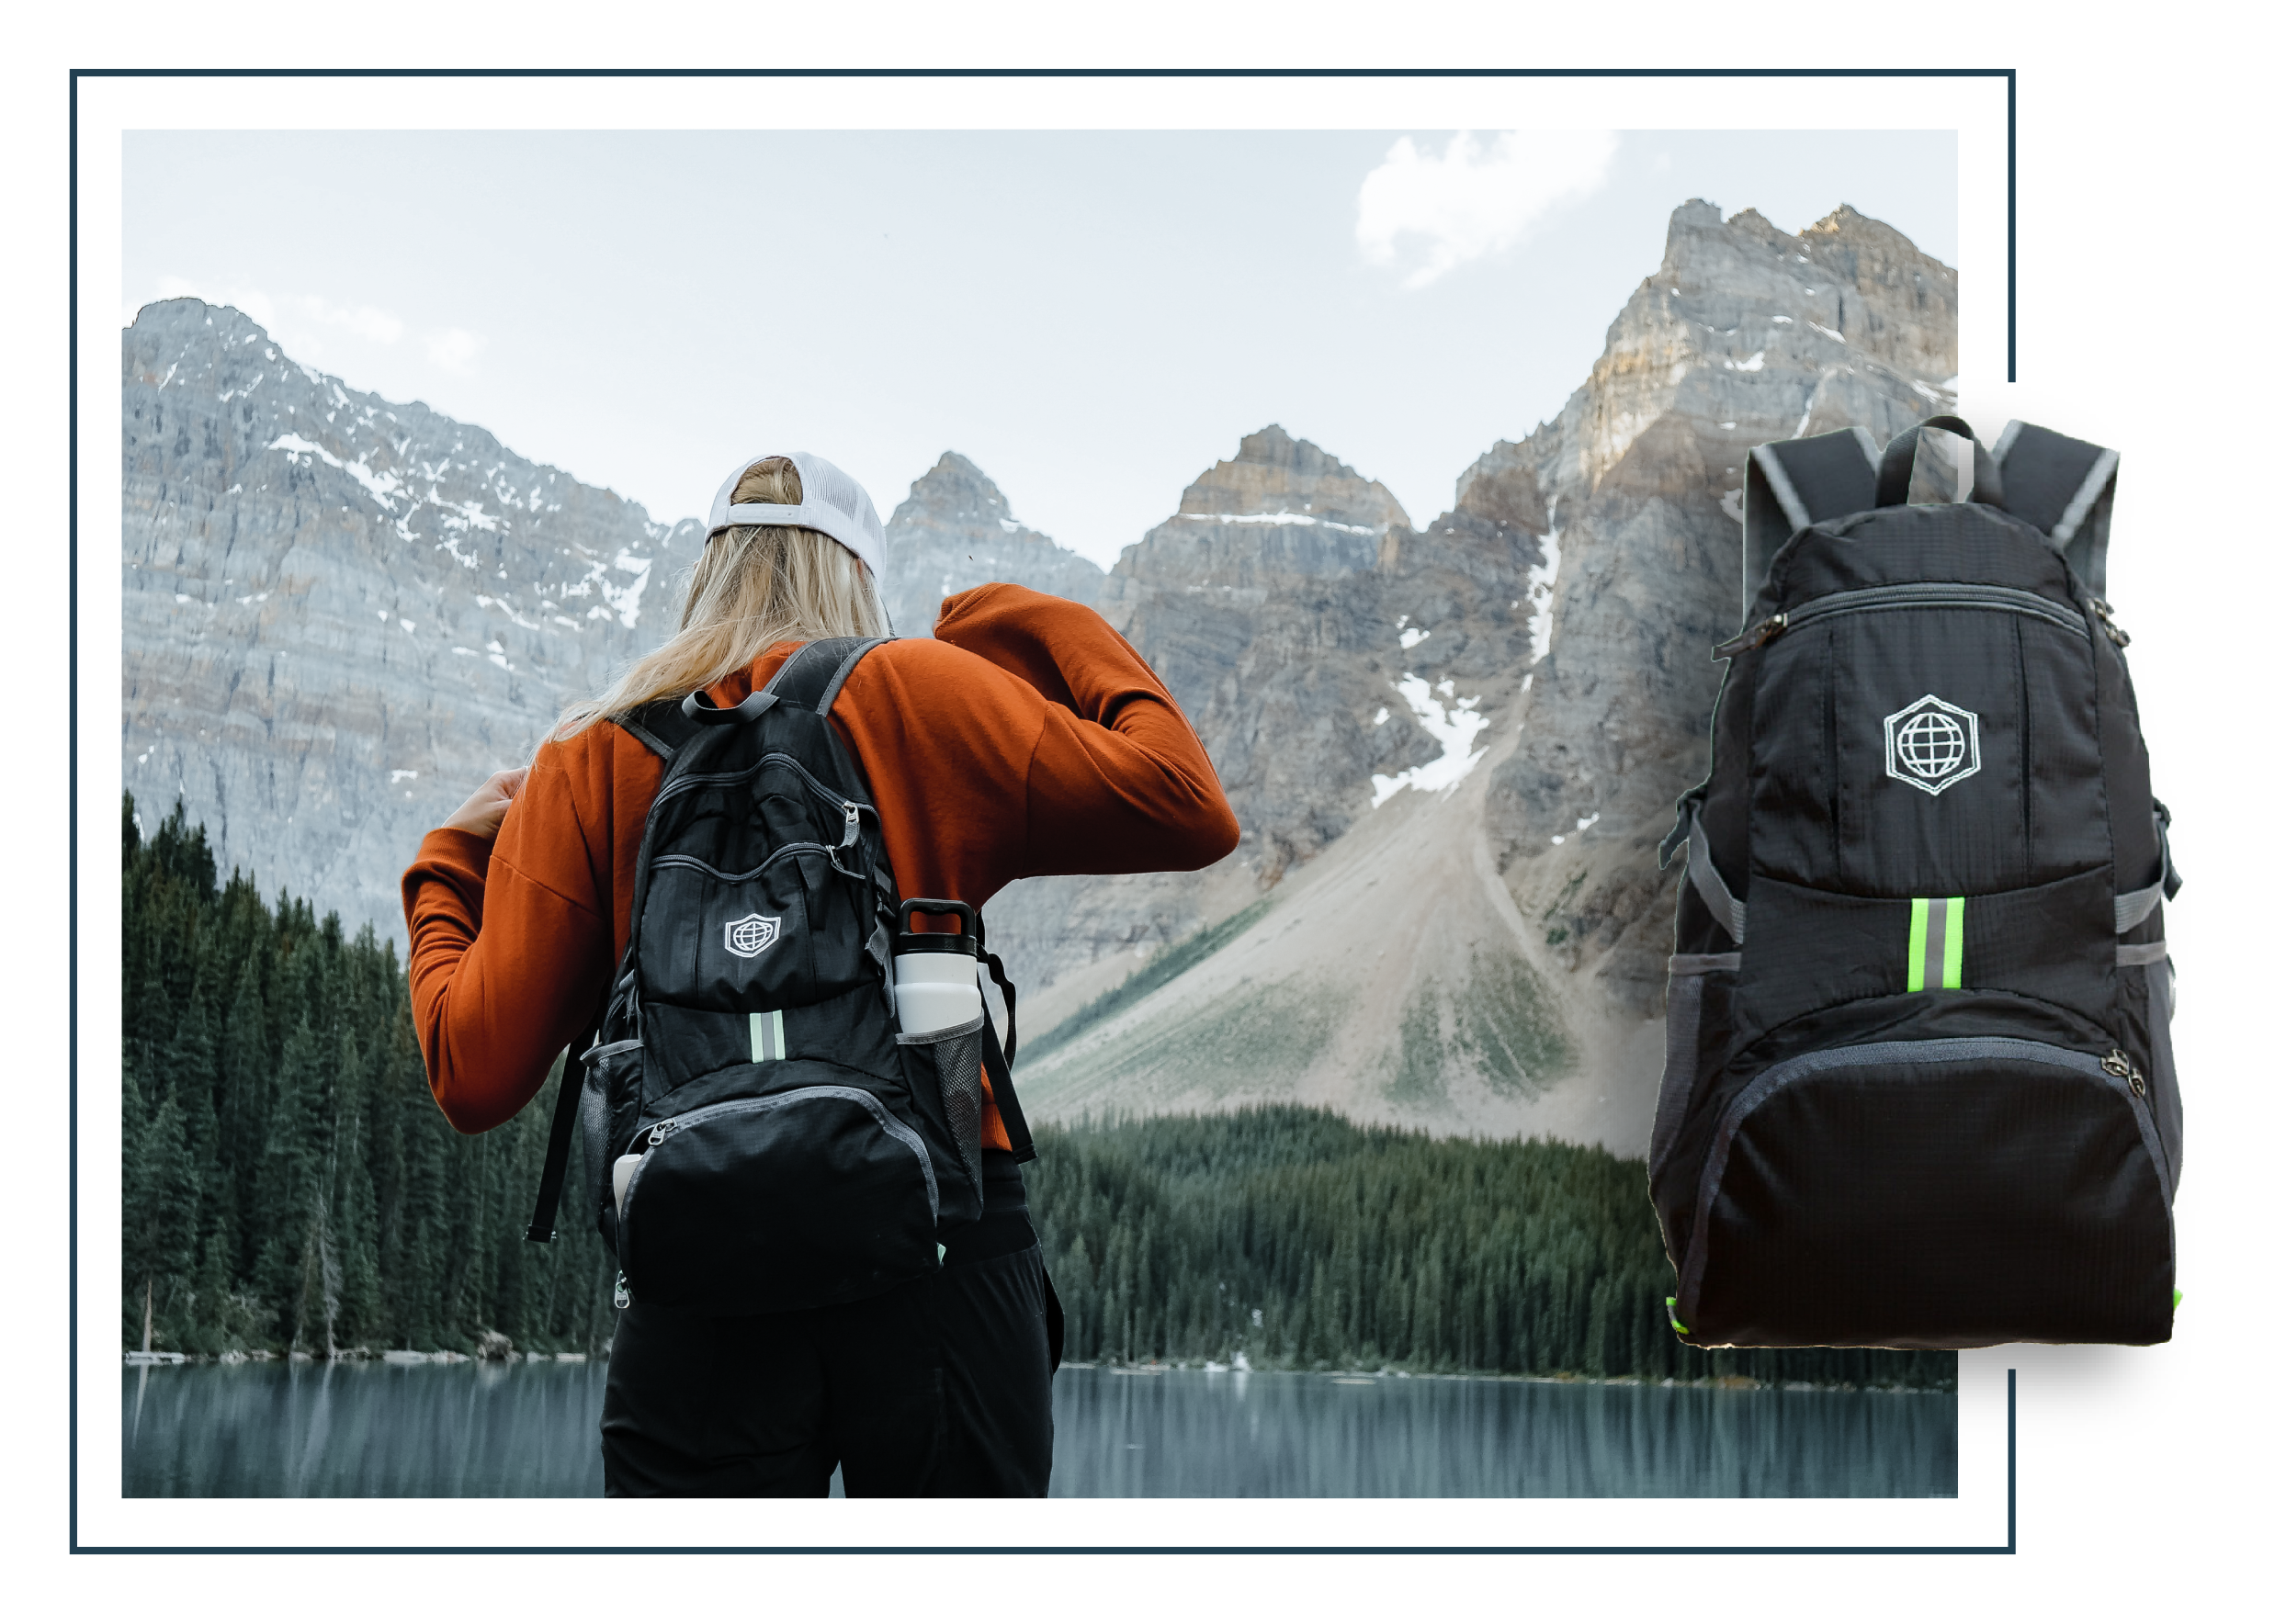 Travel daypack used by a woman with mountains in the background.